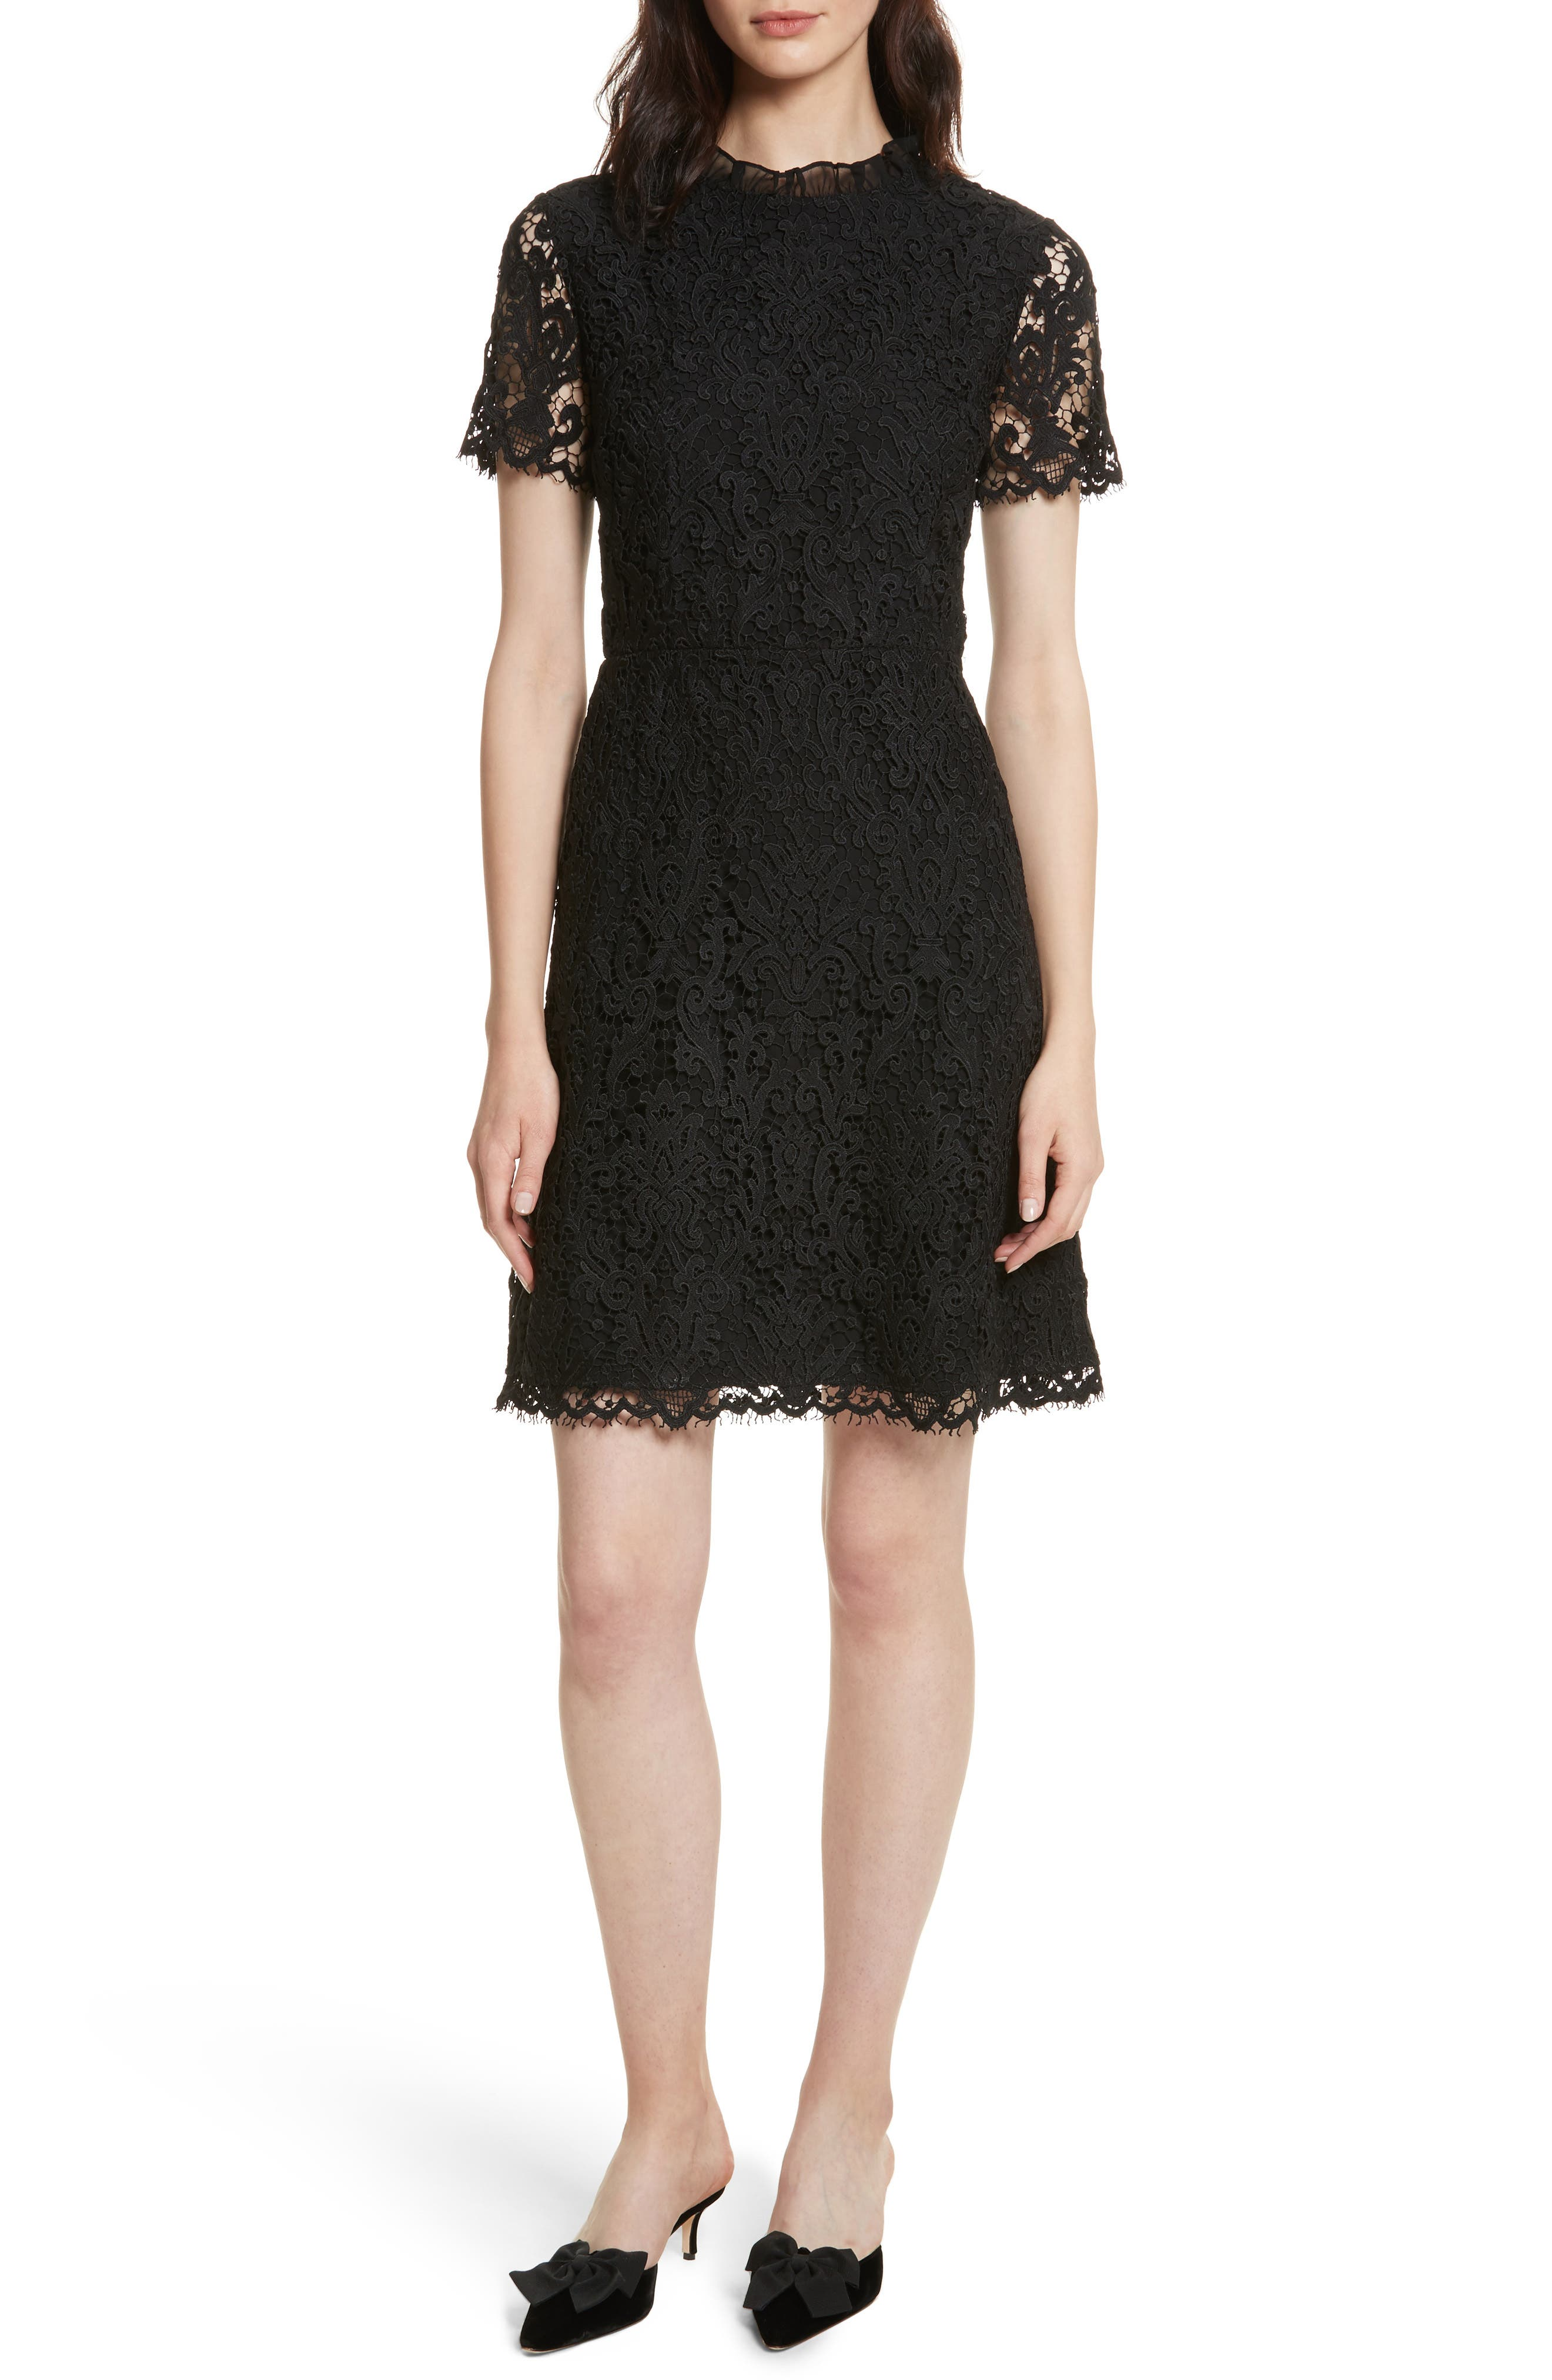 tapestry lace dress,                             Main thumbnail 1, color,                             001